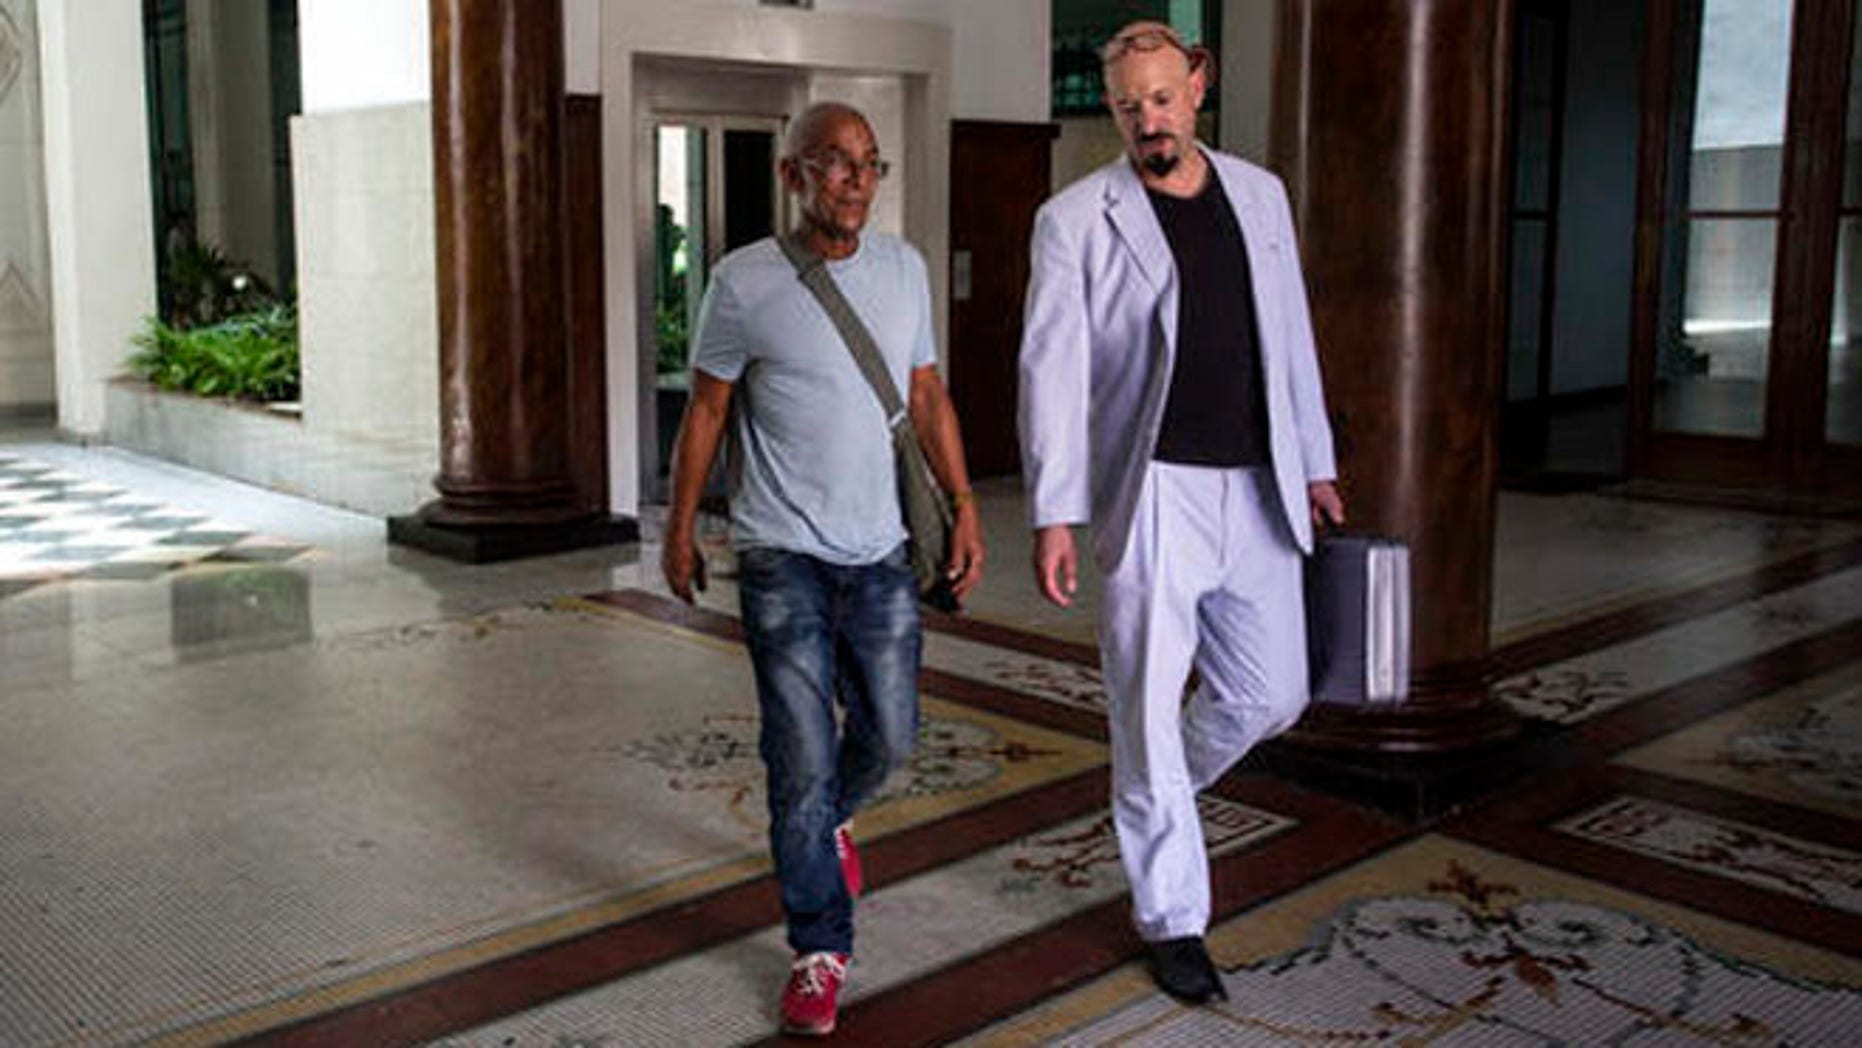 U.S. fugitive Charles Hill, left, walks with his lawyer Jason Flores Williams after an interview in Havana, Cuba, Friday, June 10, 2016. Hill, 66, who is sought in the 1971 killing of a New Mexico state policeman, told The Associated Press that Cuban contacts recently assured him he was at no risk of extradition. (AP Photo/Desmond Boylan)